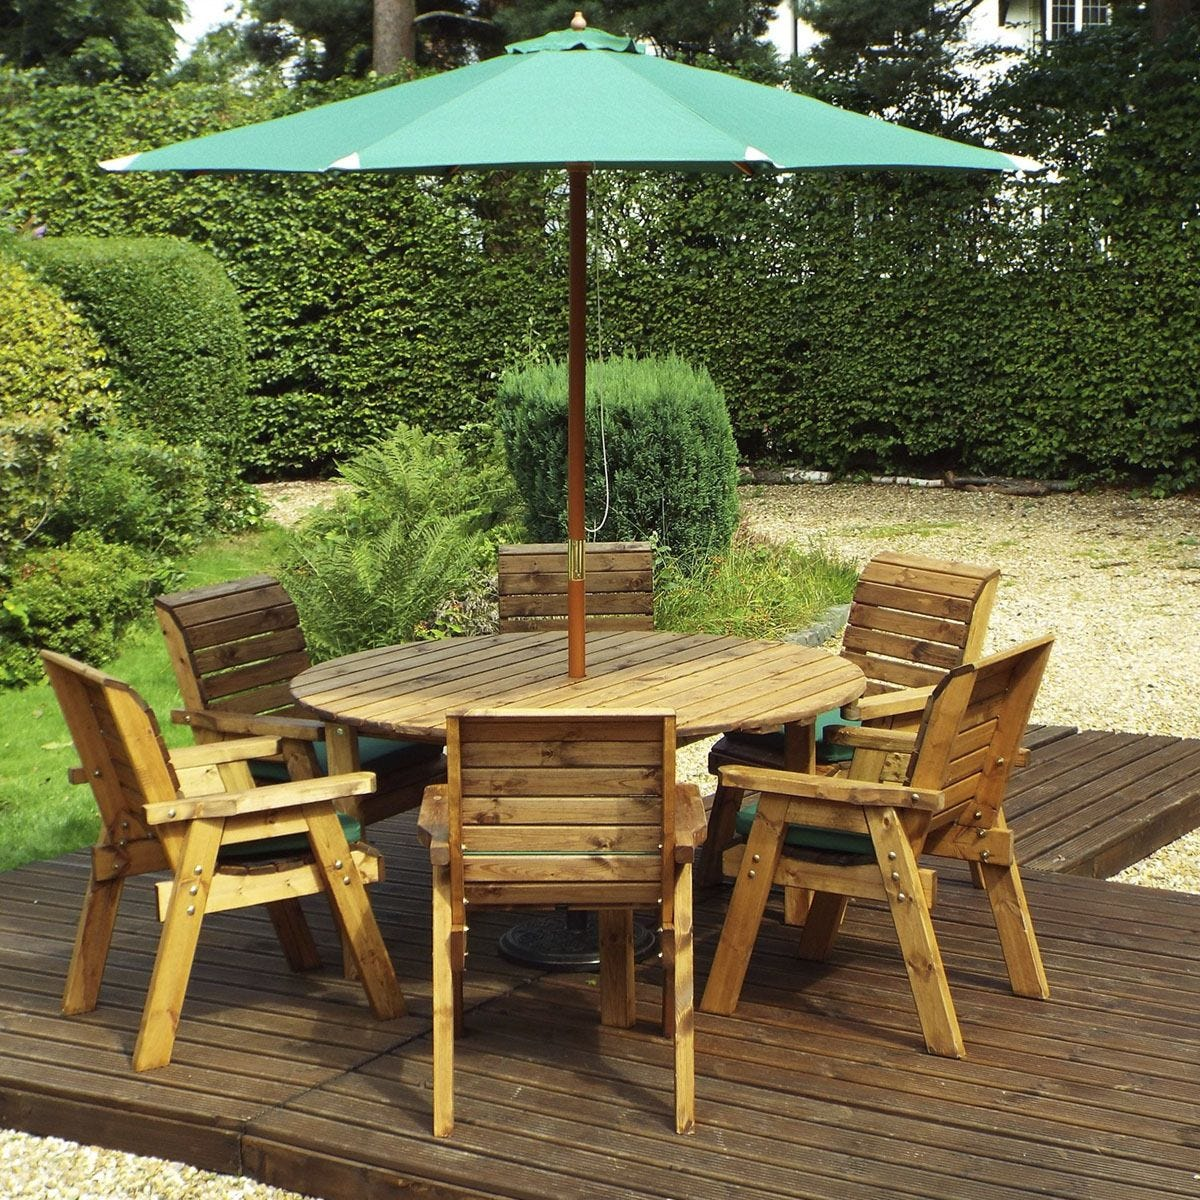 Charles Taylor 6 Seater Round Table Set with Green Cushions, Storage Bag, Parasol and Base